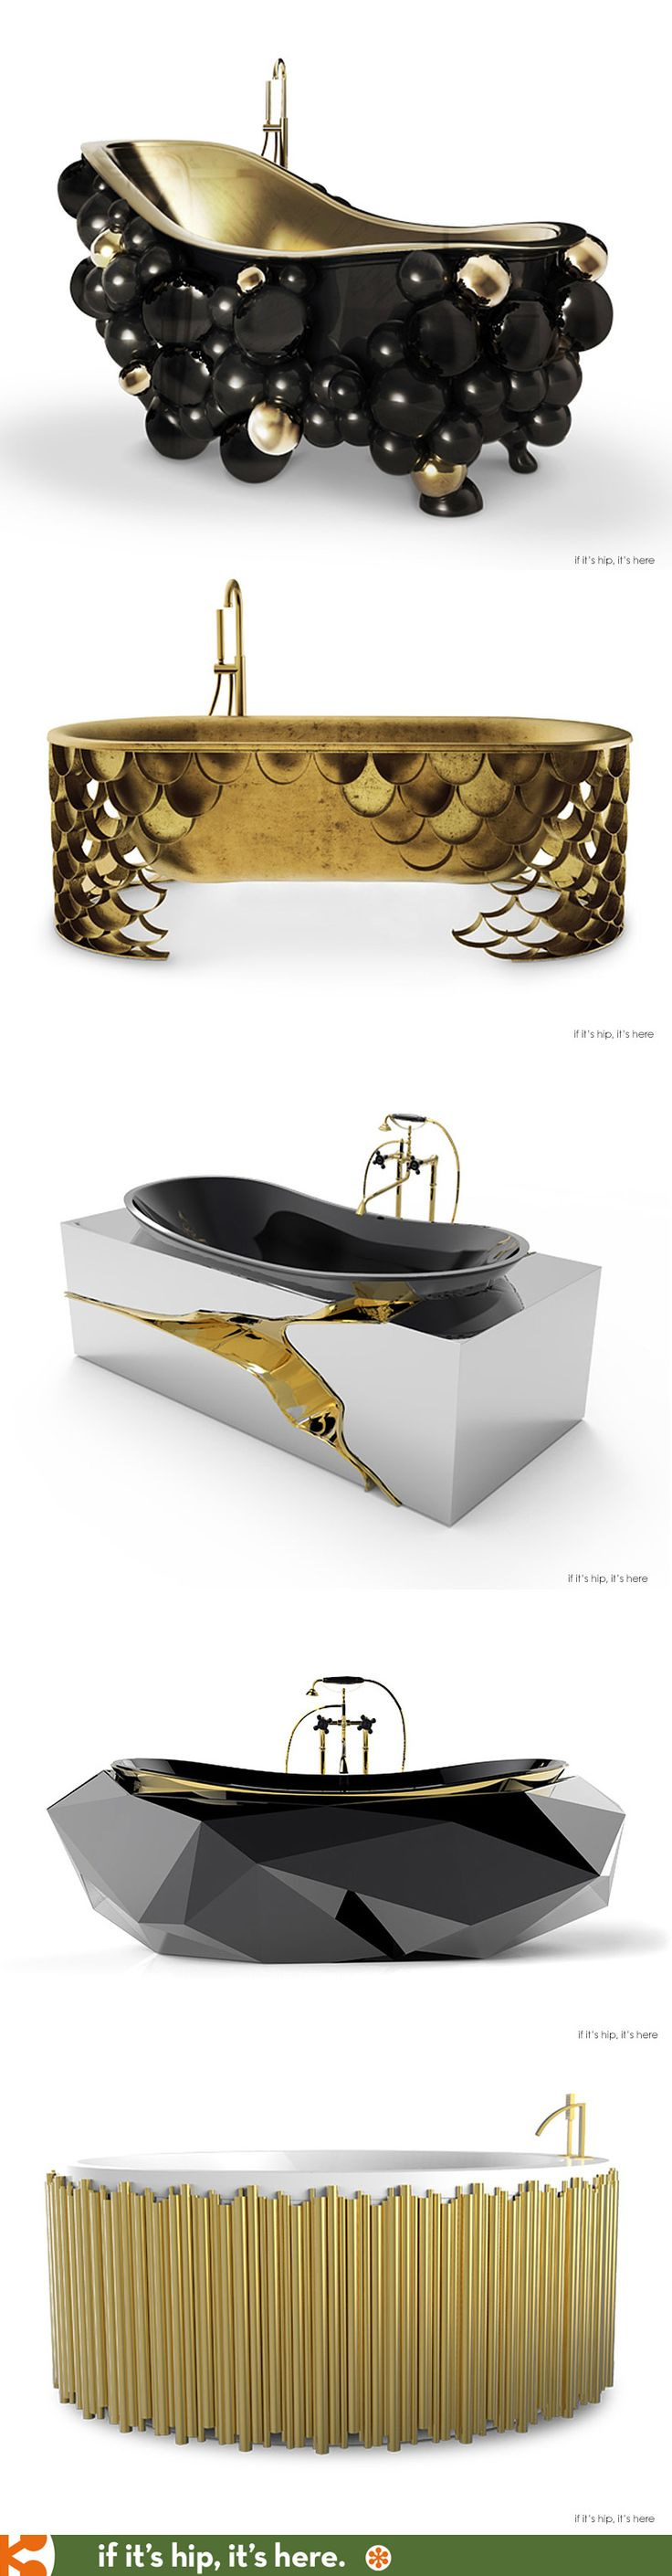 Five outrageously obnoxious luxury tubs from Maison Valentina | http://www.ifitshipitshere.com/bathtubs-from-maison-valentina/